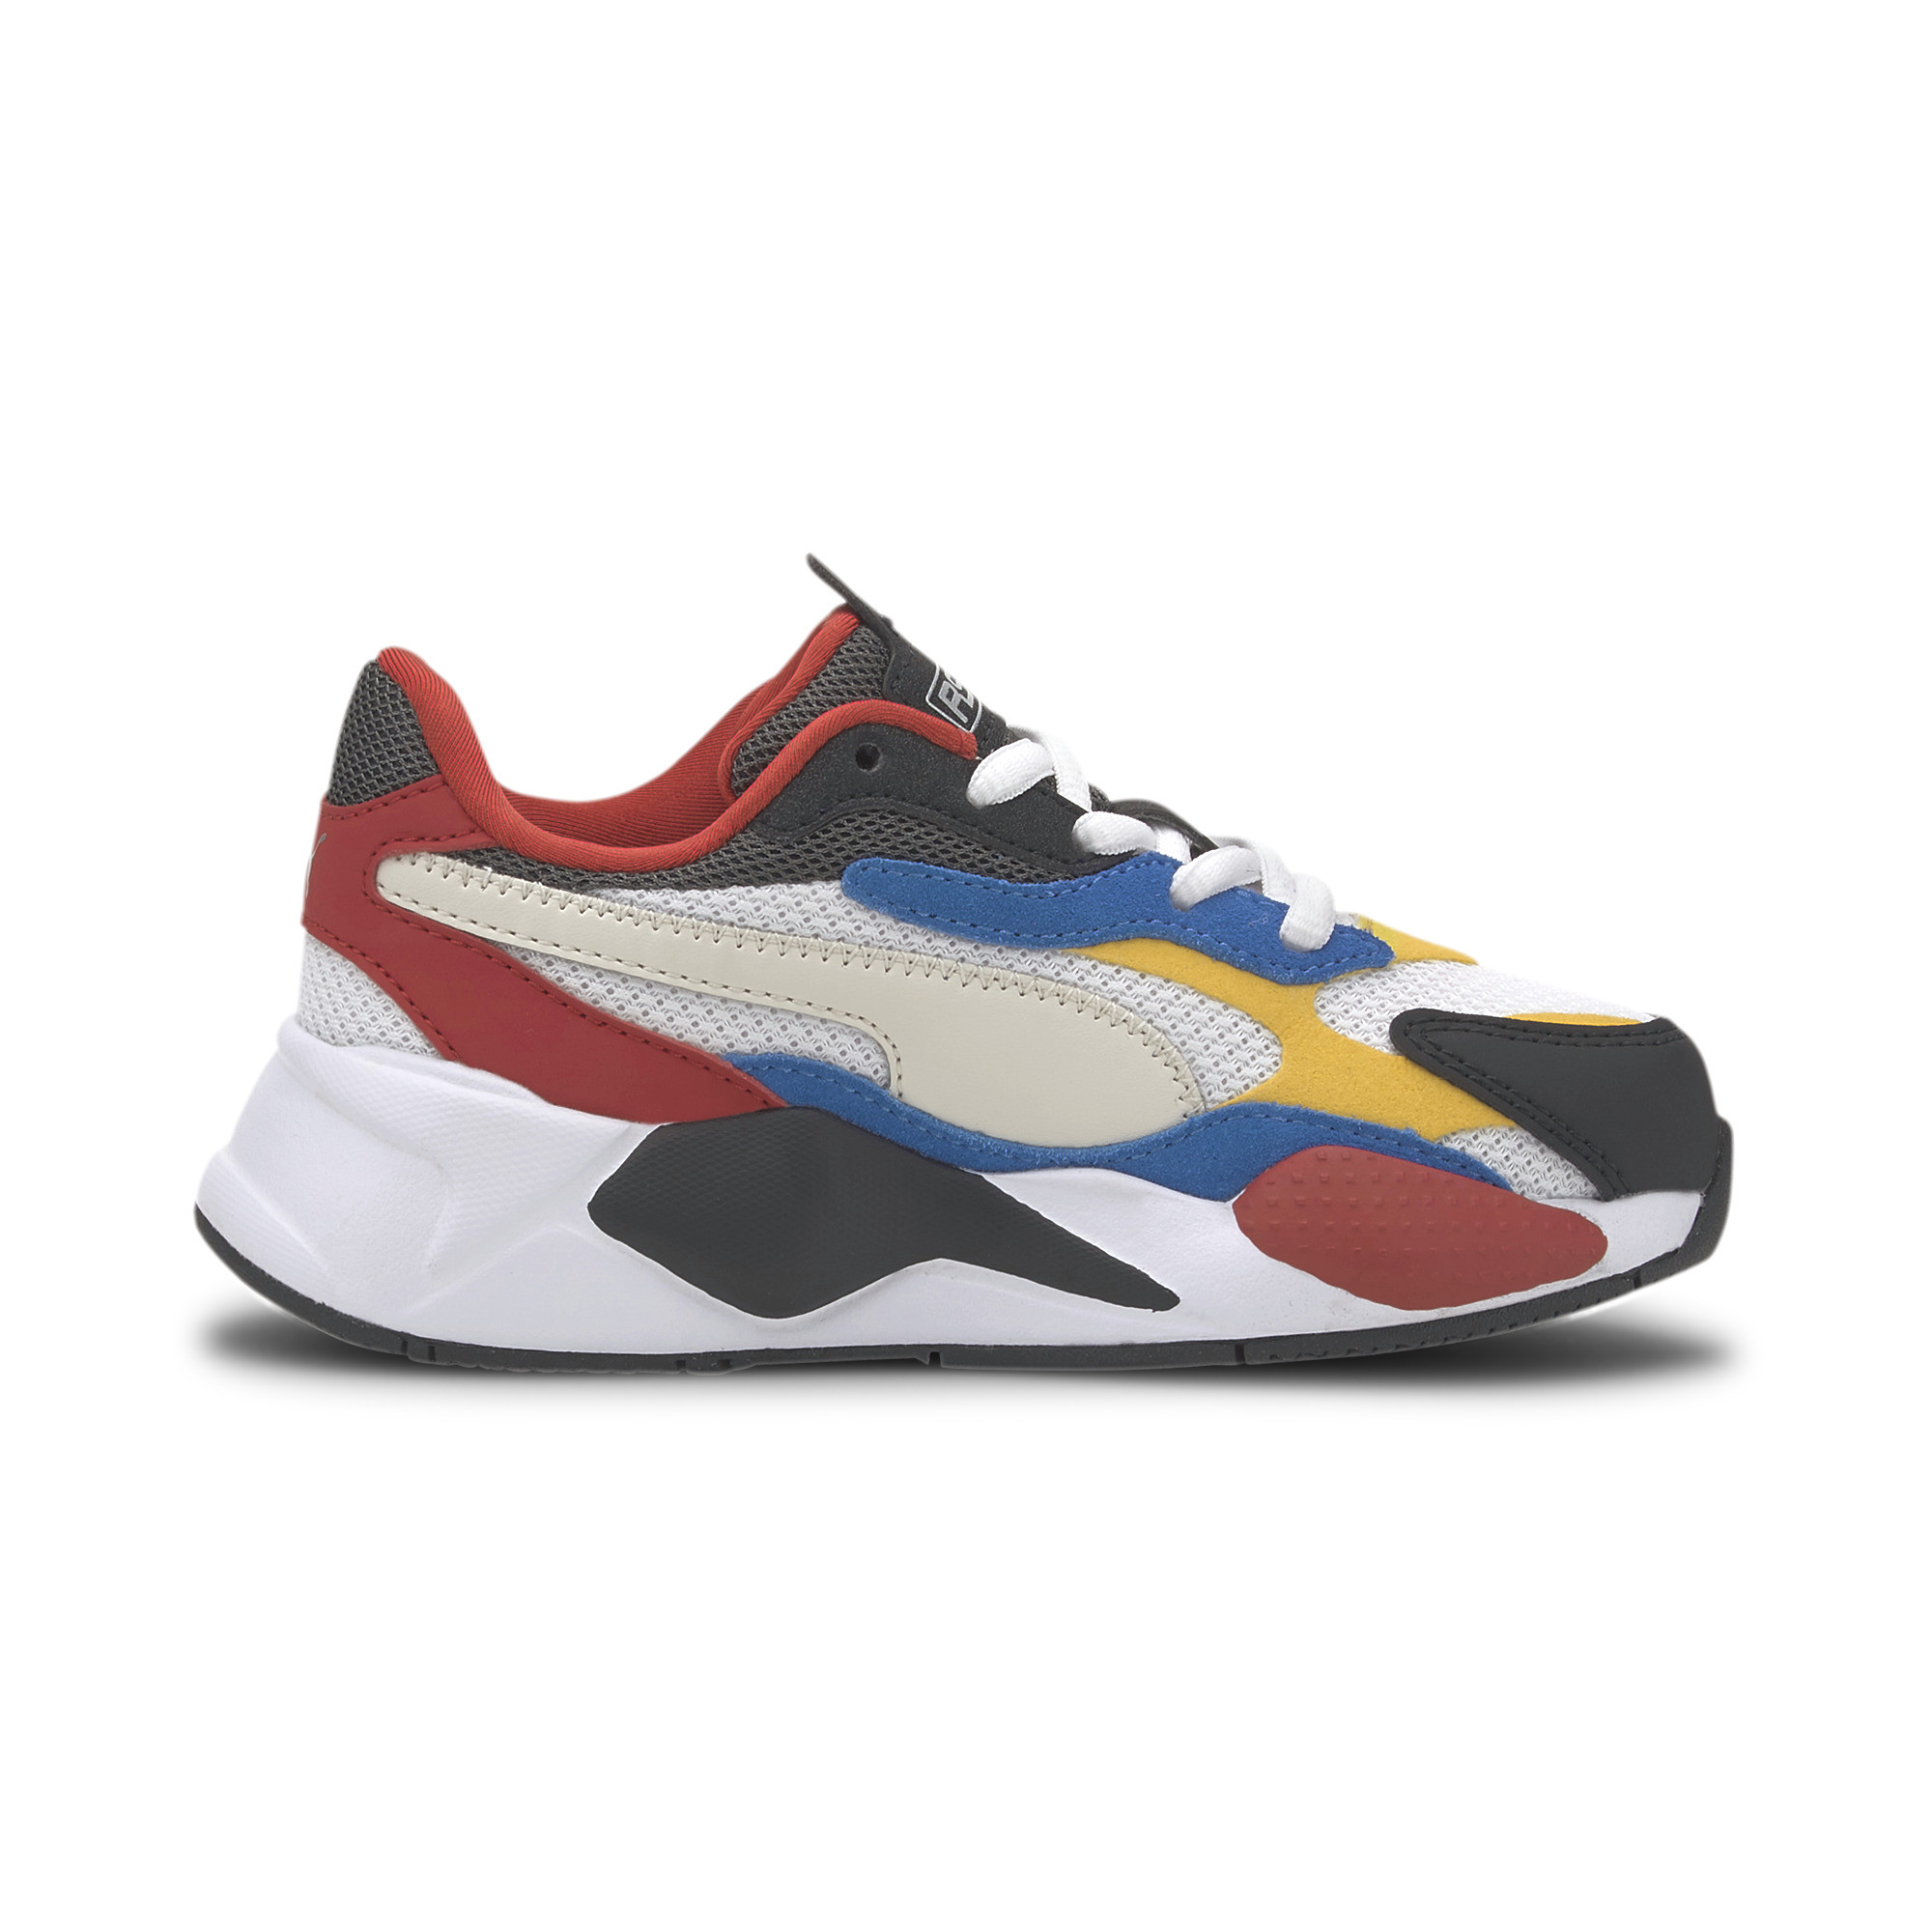 PUMA-RS-X-Puzzle-Little-Kids-039-Shoes-Kids-Shoe-Kids thumbnail 14